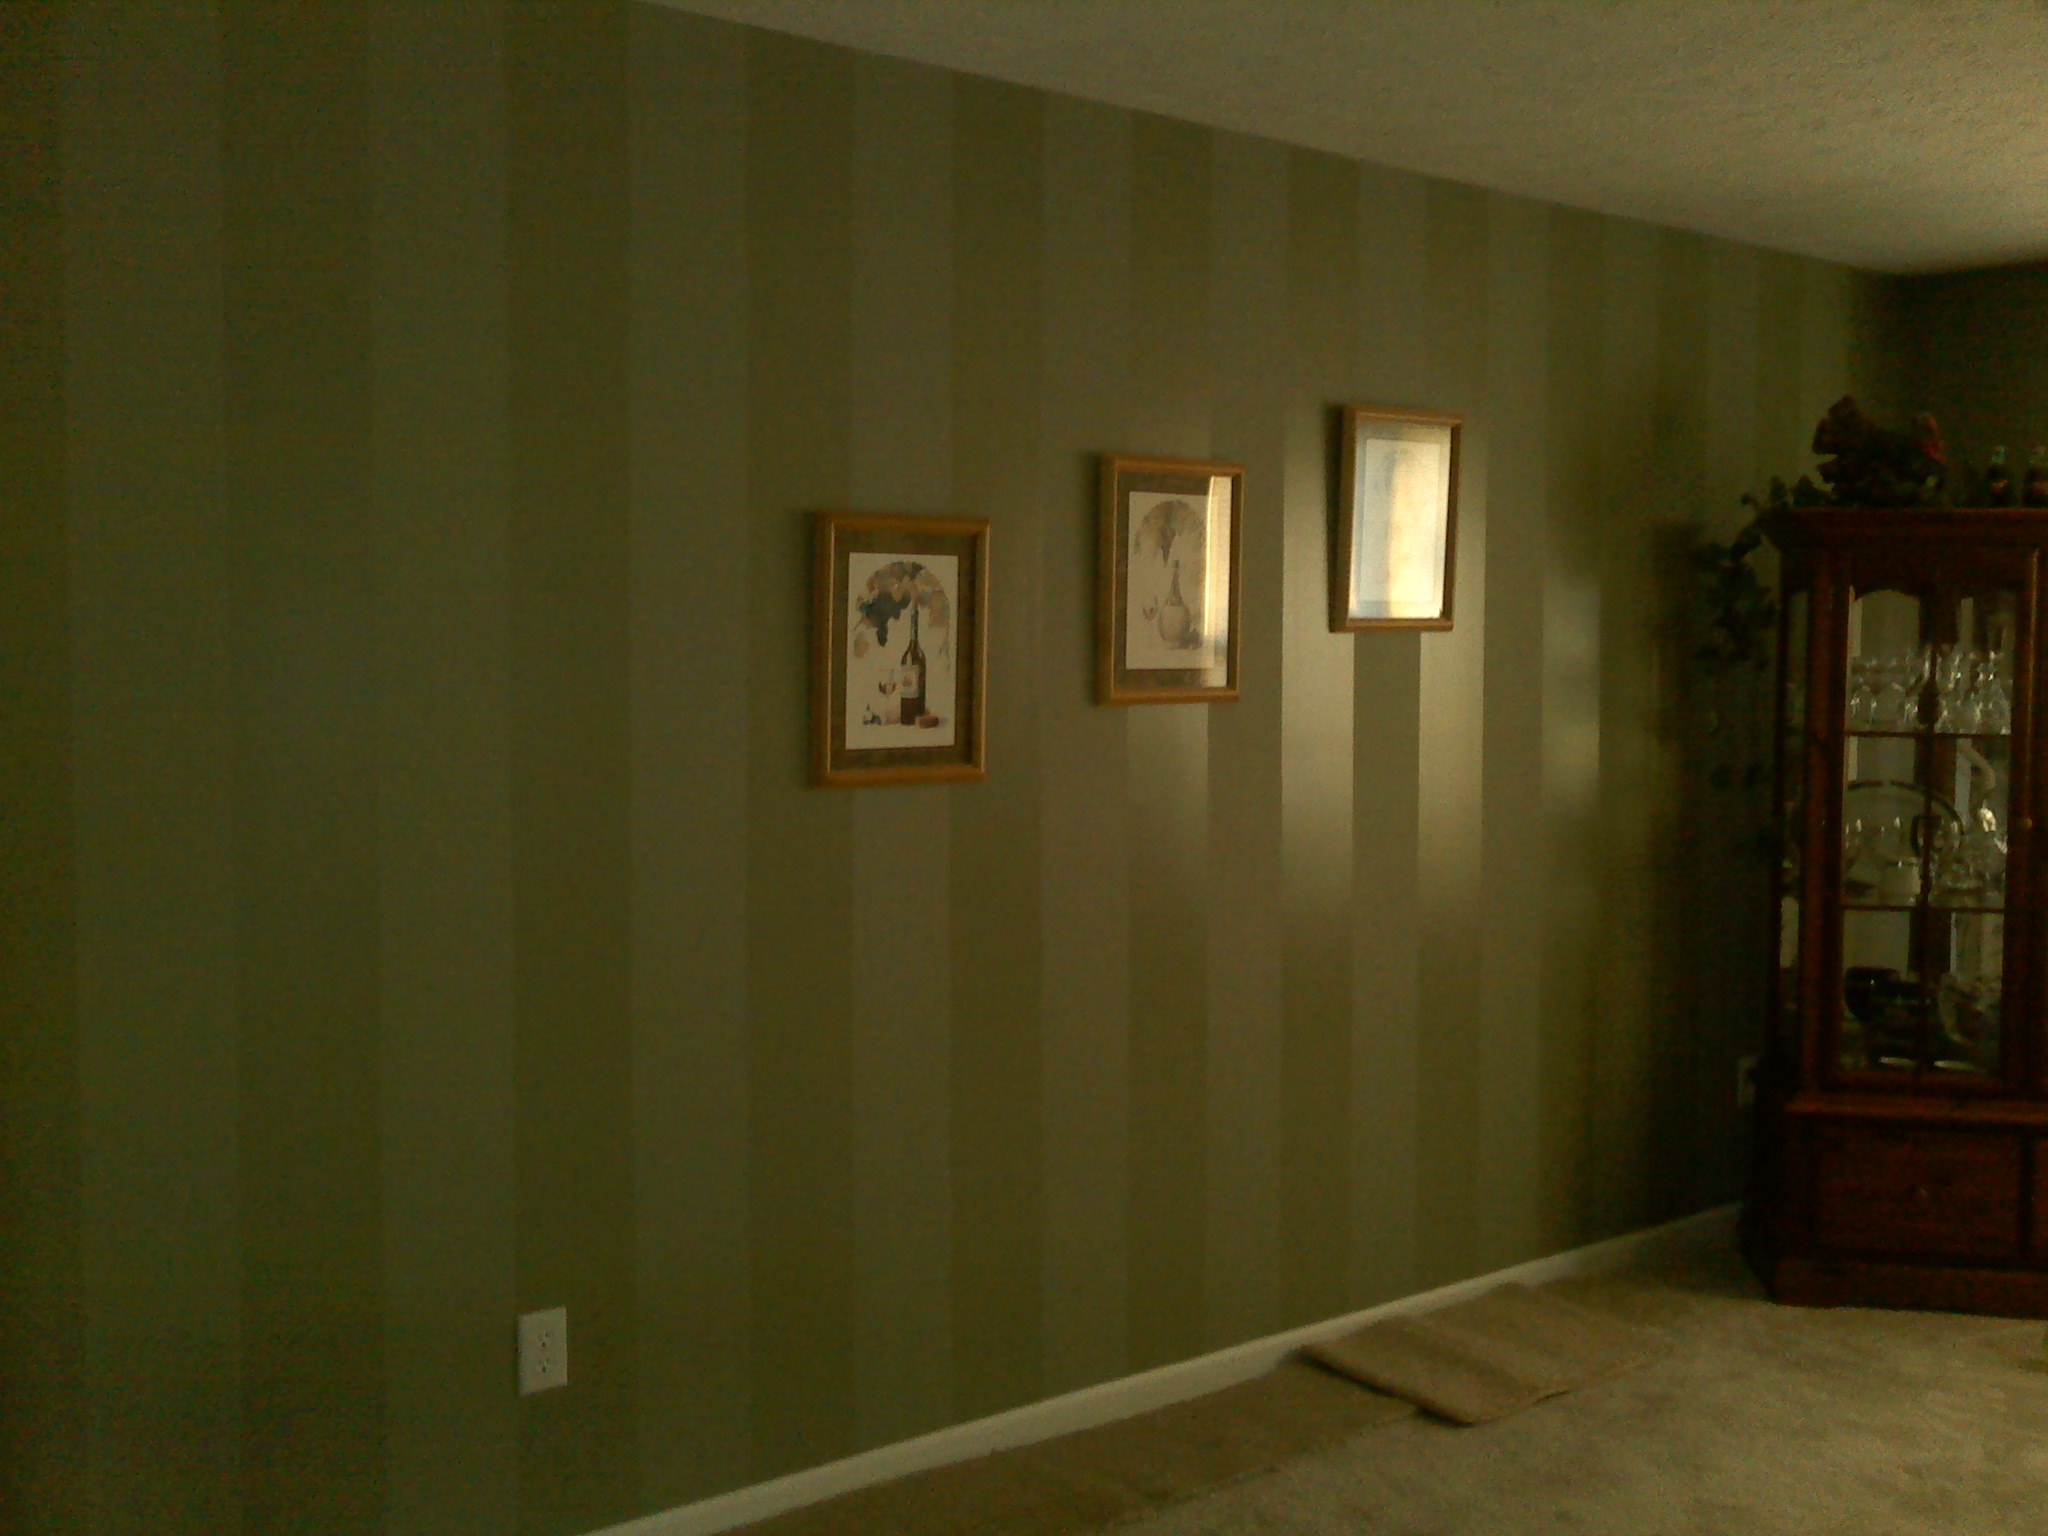 An Interior Dining Room Paint Job With A Strip Finish Technique